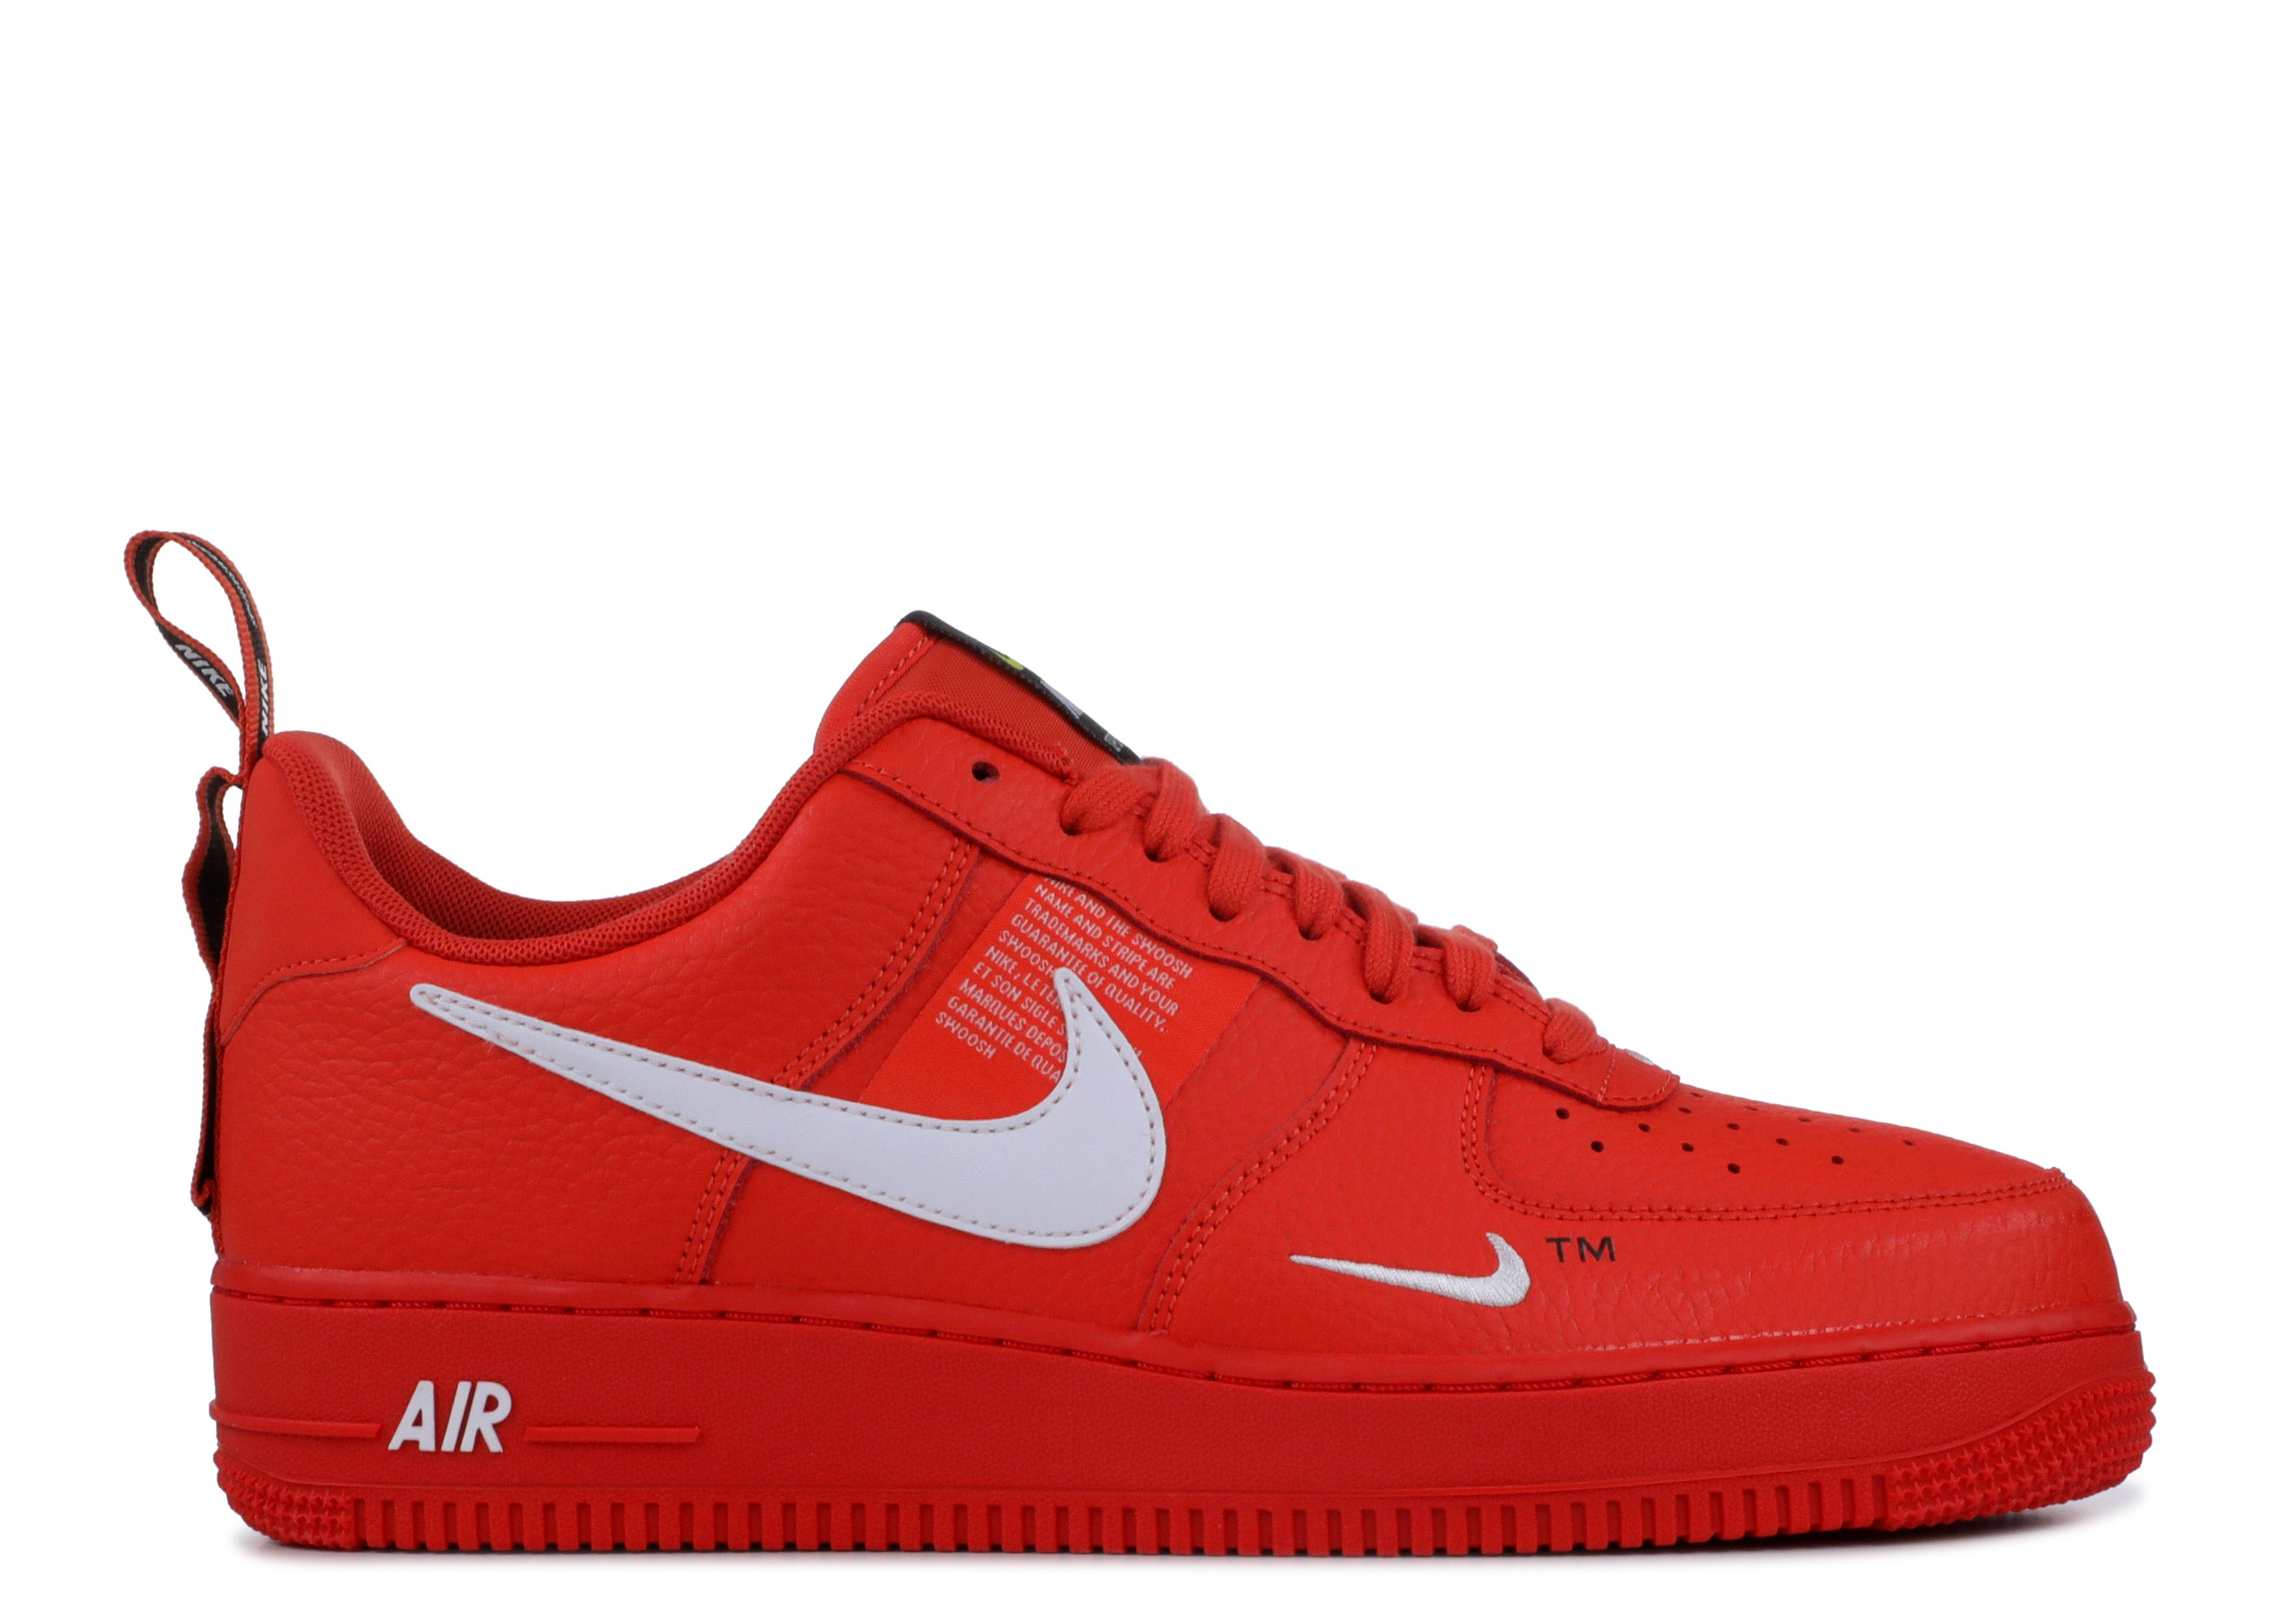 Air Force 1 07 Lv8 Utility With Images Nike Air Force Nike